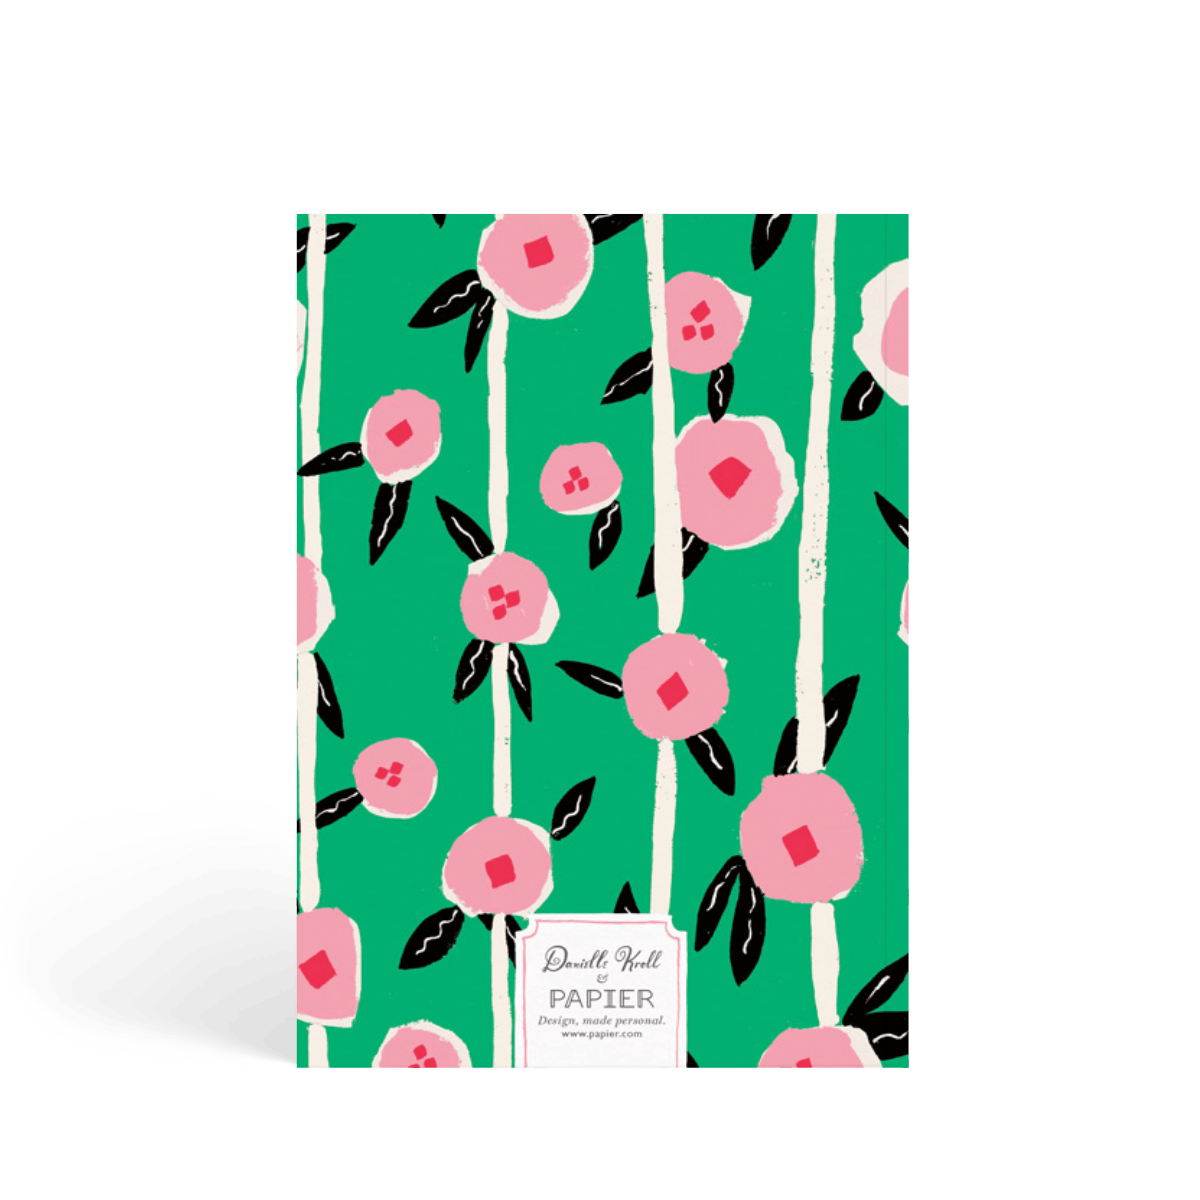 Https%3a%2f%2fwww.papier.com%2fproduct image%2f28138%2f5%2fflowers stripes 7049 back 1505740428.png?ixlib=rb 1.1